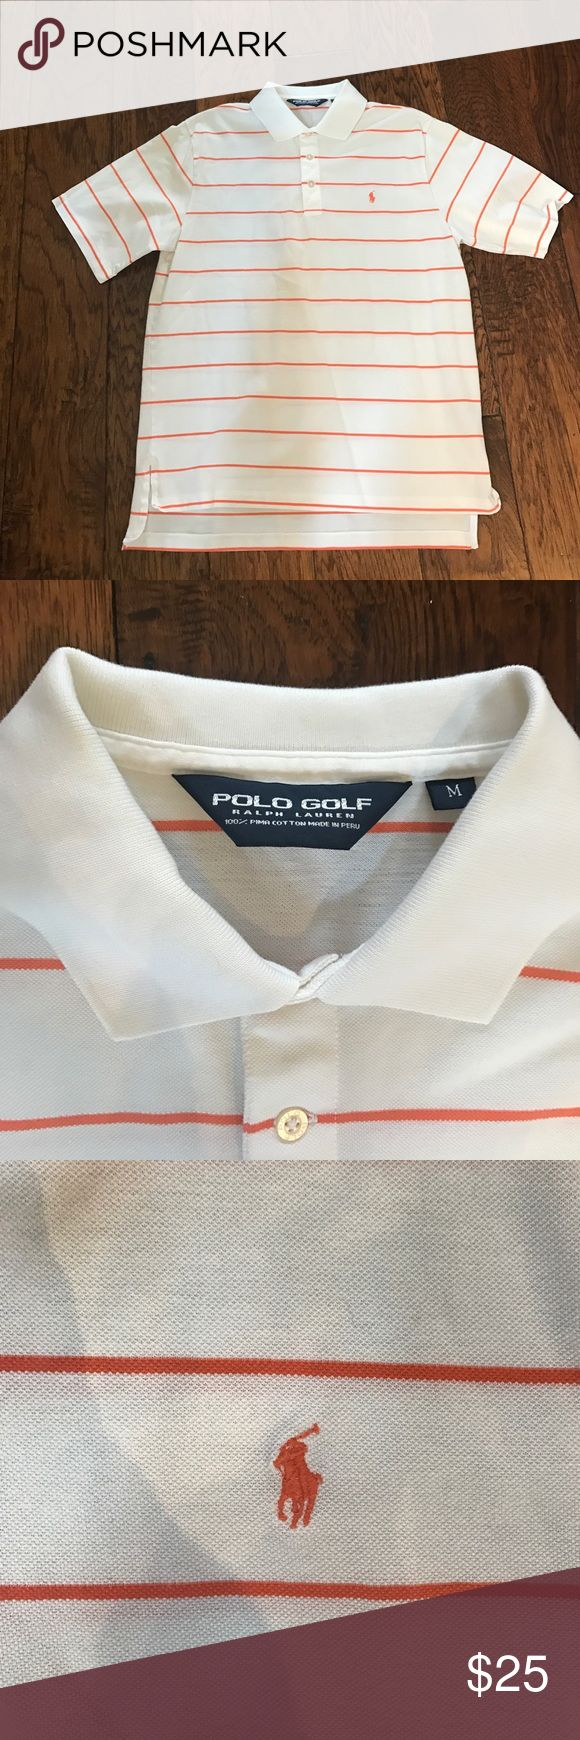 Men's Polo Golf Shirt Excellent condition! Bundle & save! Polo by Ralph Lauren Shirts Polos